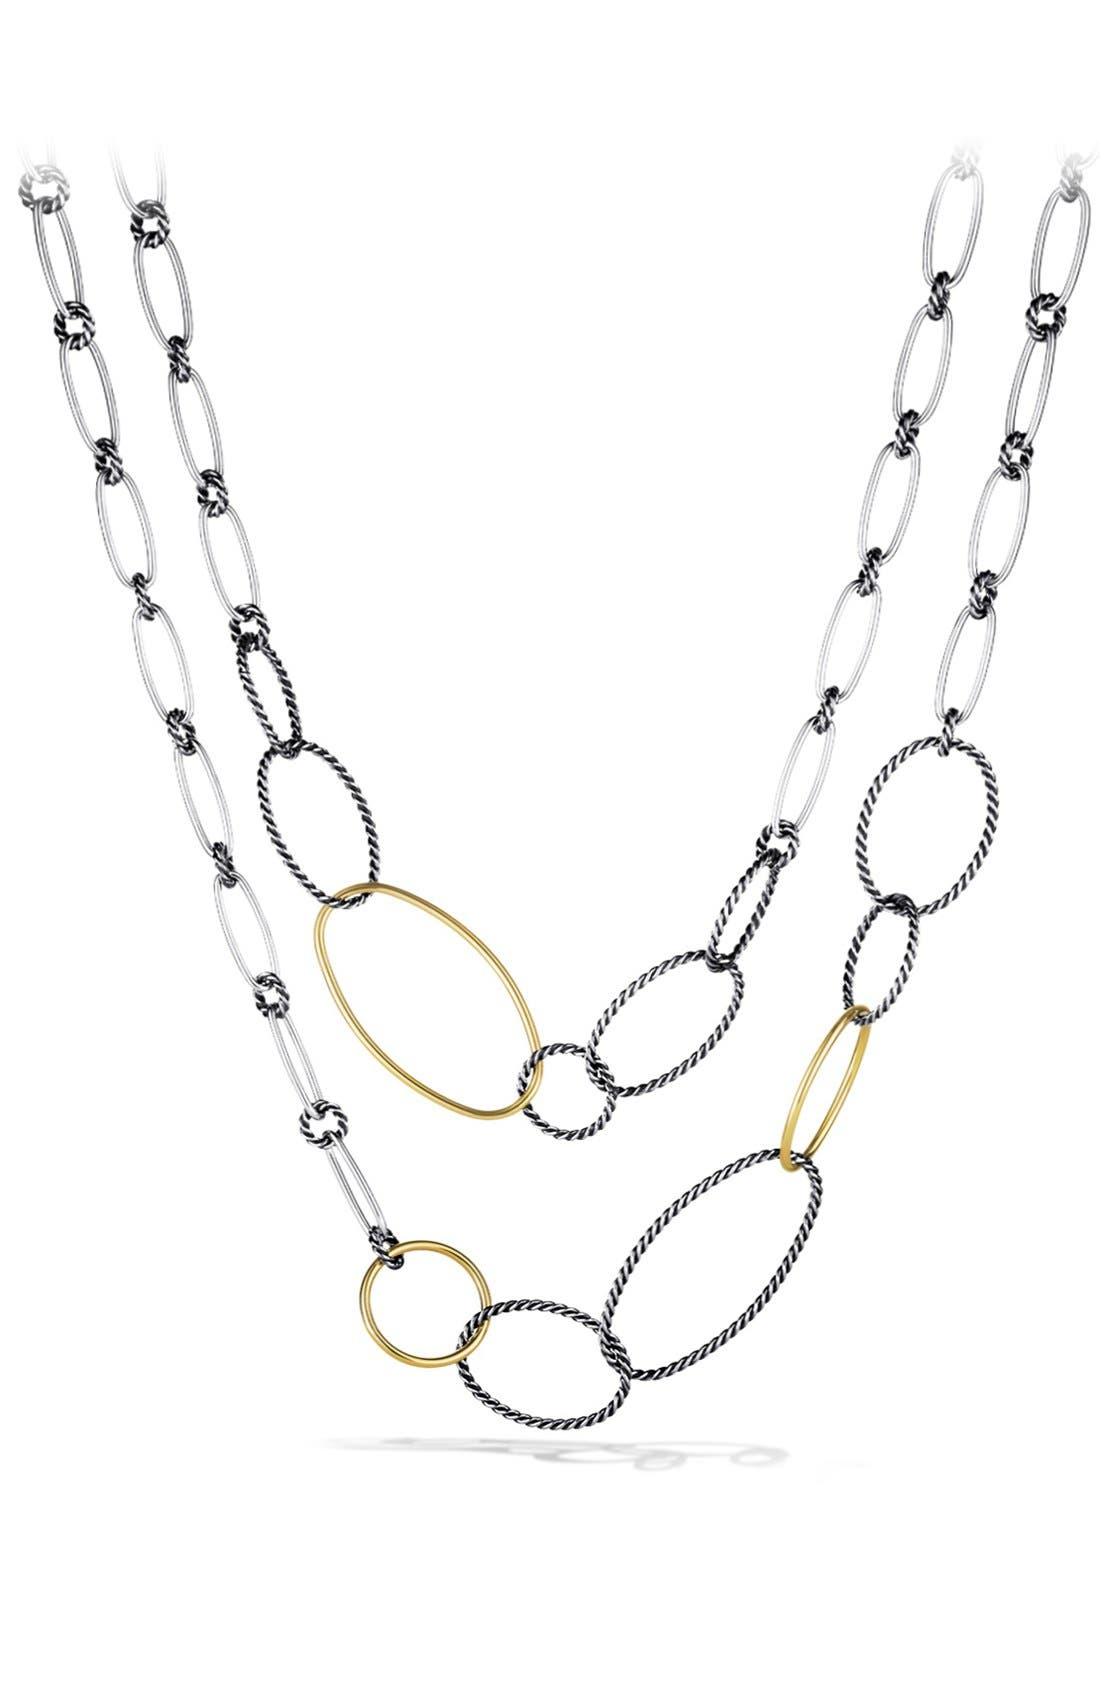 Alternate Image 1 Selected - David Yurman 'Mobile' Link Necklace with Gold